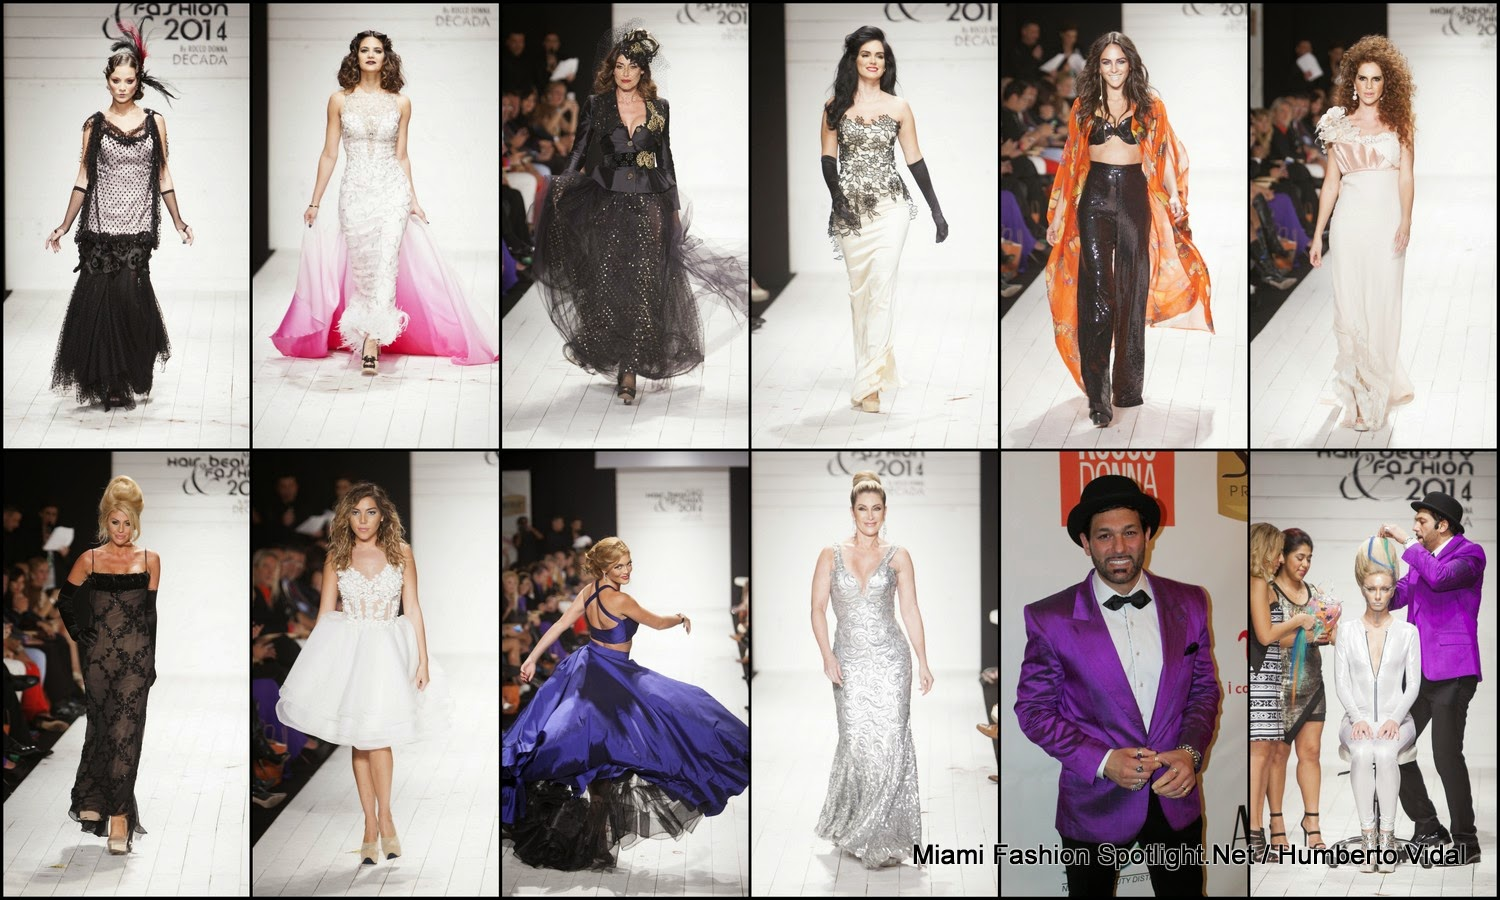 Leonardo Rocco celebrated a decade of the glamorous Miami Hair, Beauty & Fashion event with a look at fashion through the ages